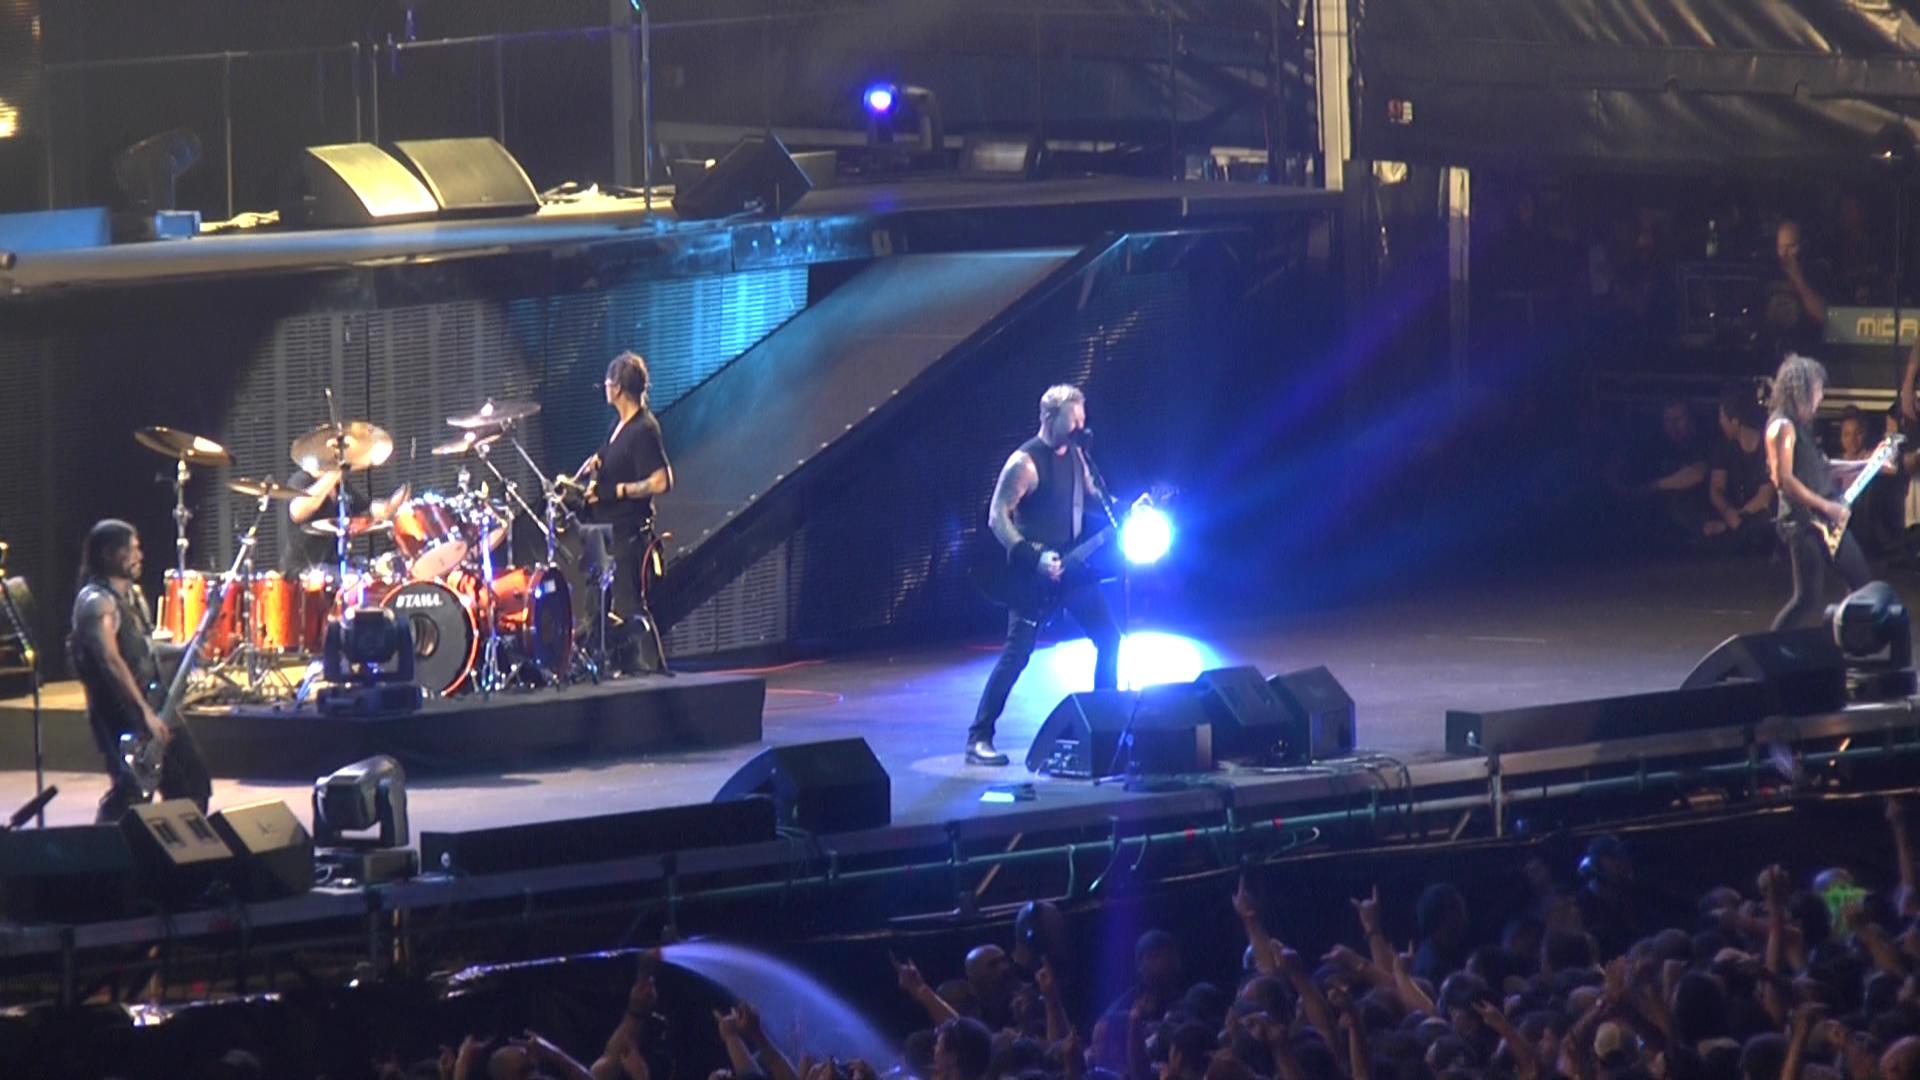 metallica_2013-02-24_sydneyaustralia_screen_41378223635